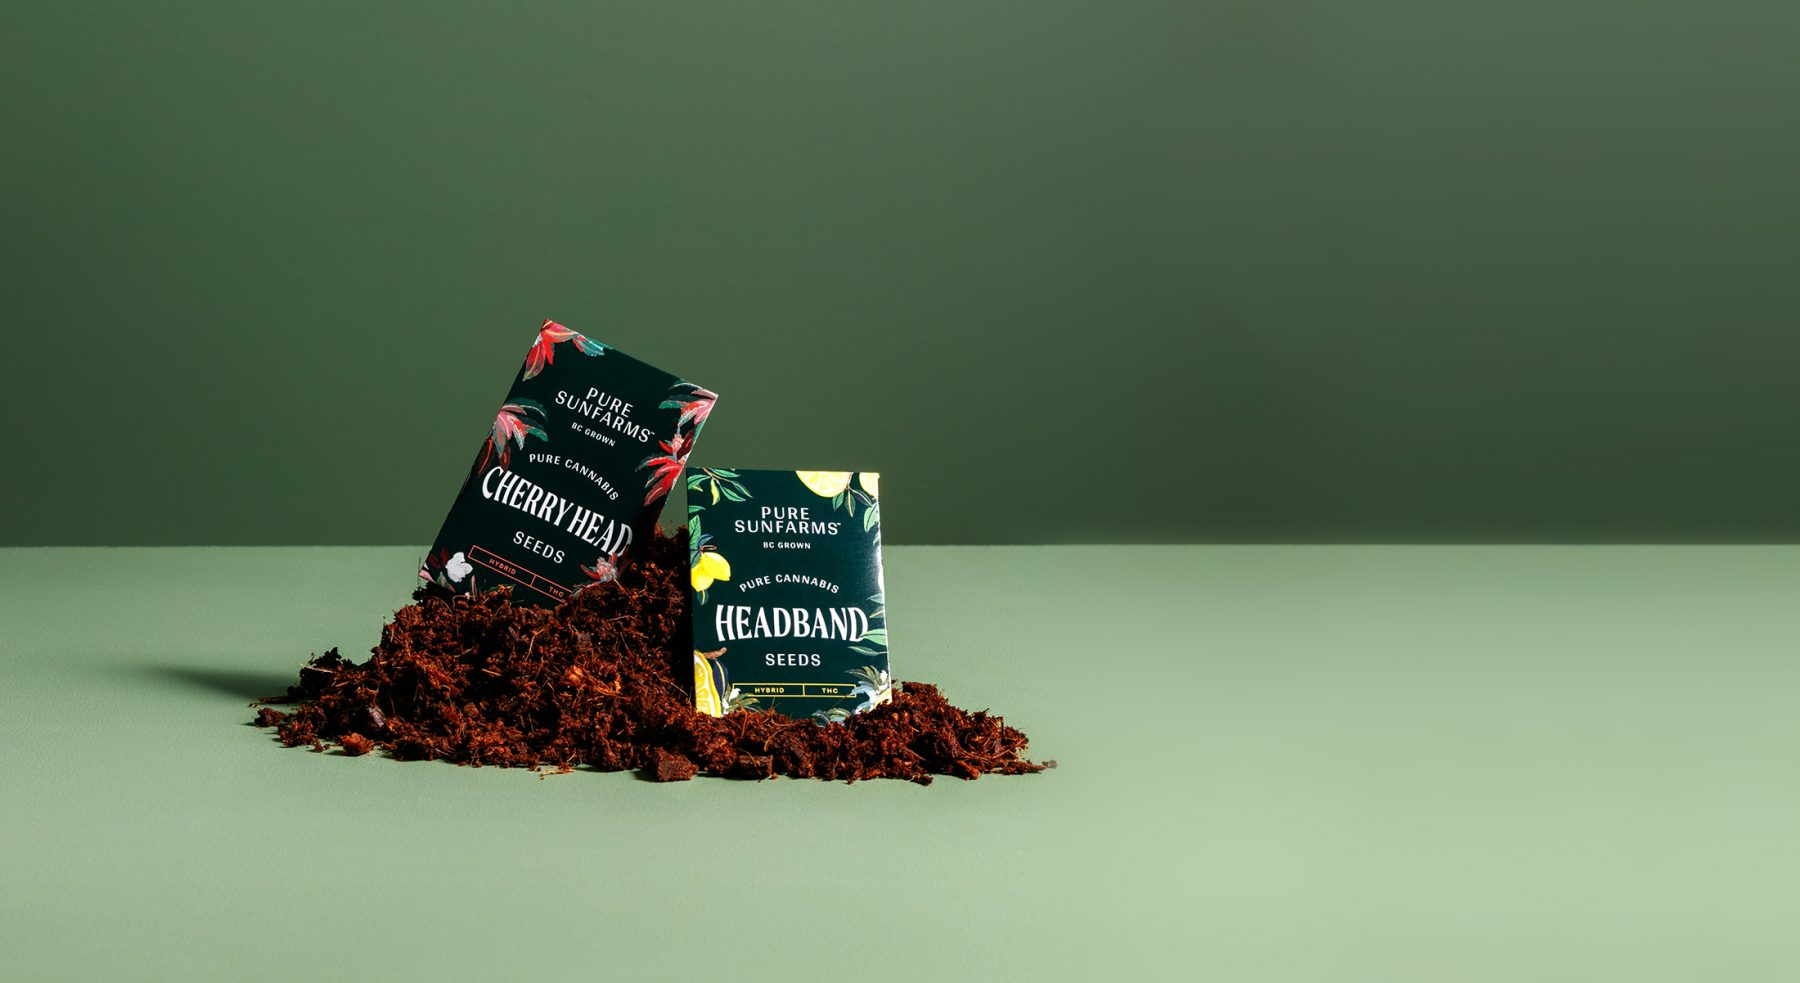 Package of Cherry Head and Headband Seeds sitting on top of a mound of soil.